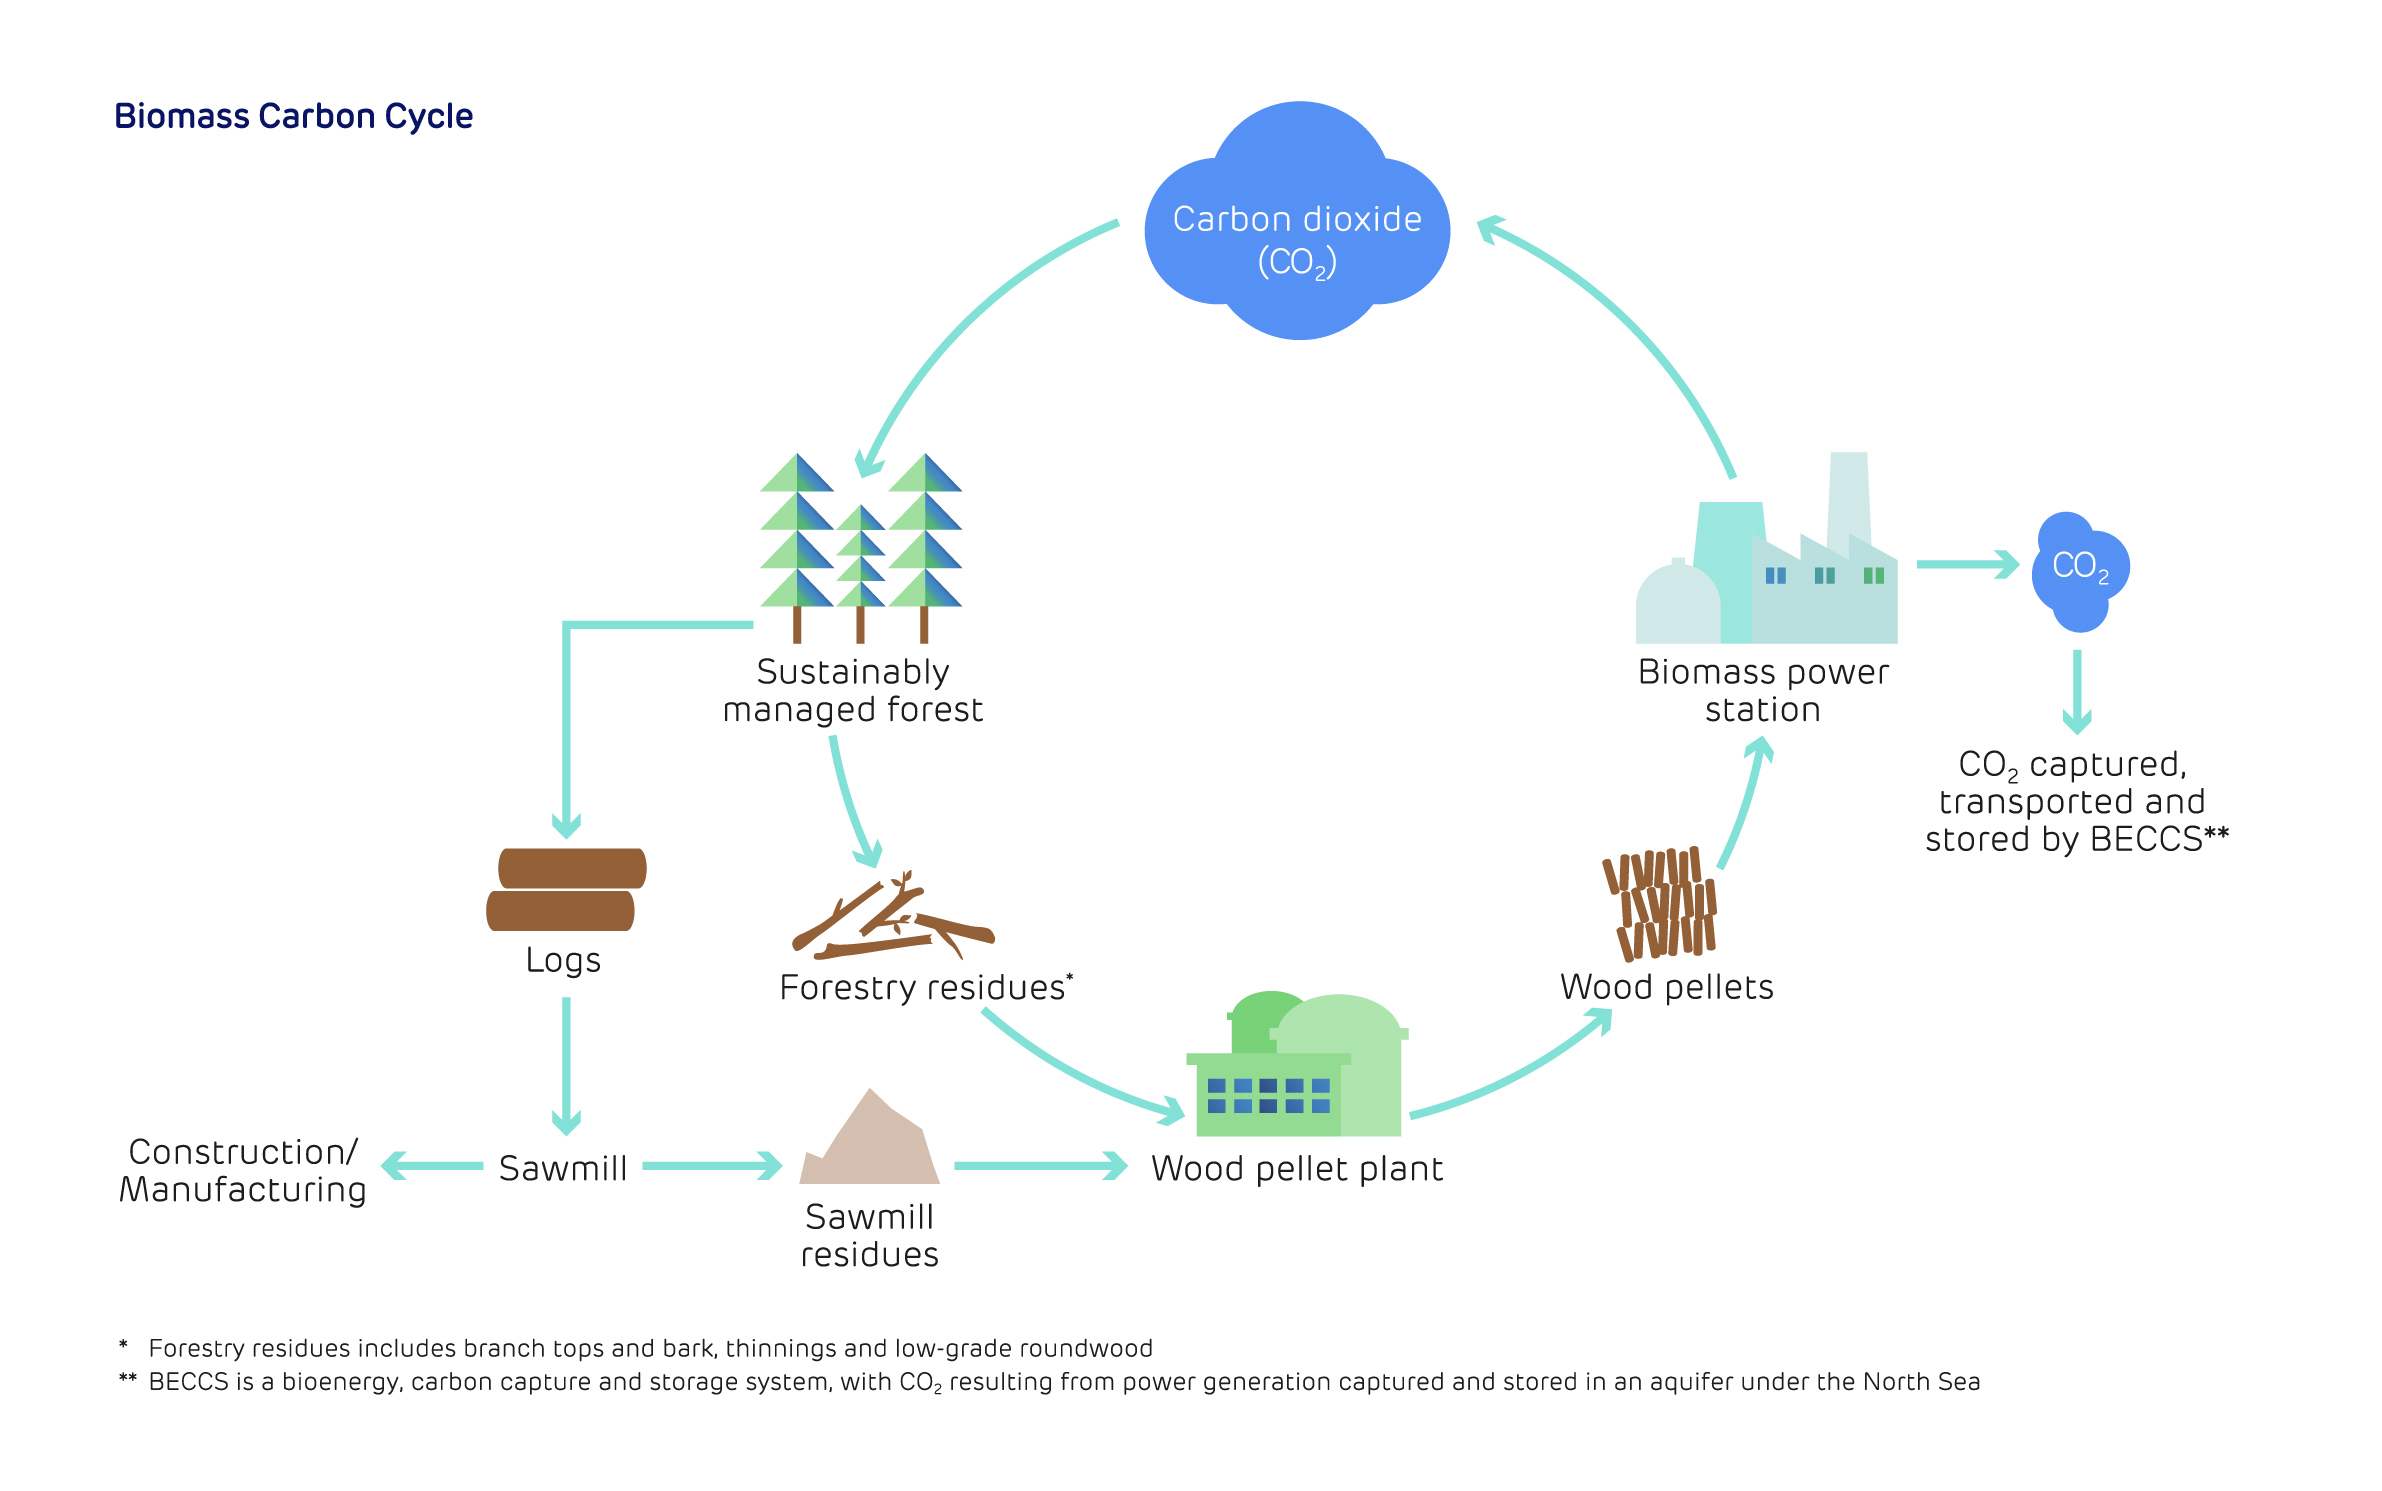 Biomass: The renewable energy source supporting the zero-carbon transition - Biomass Carbon Cycle Image